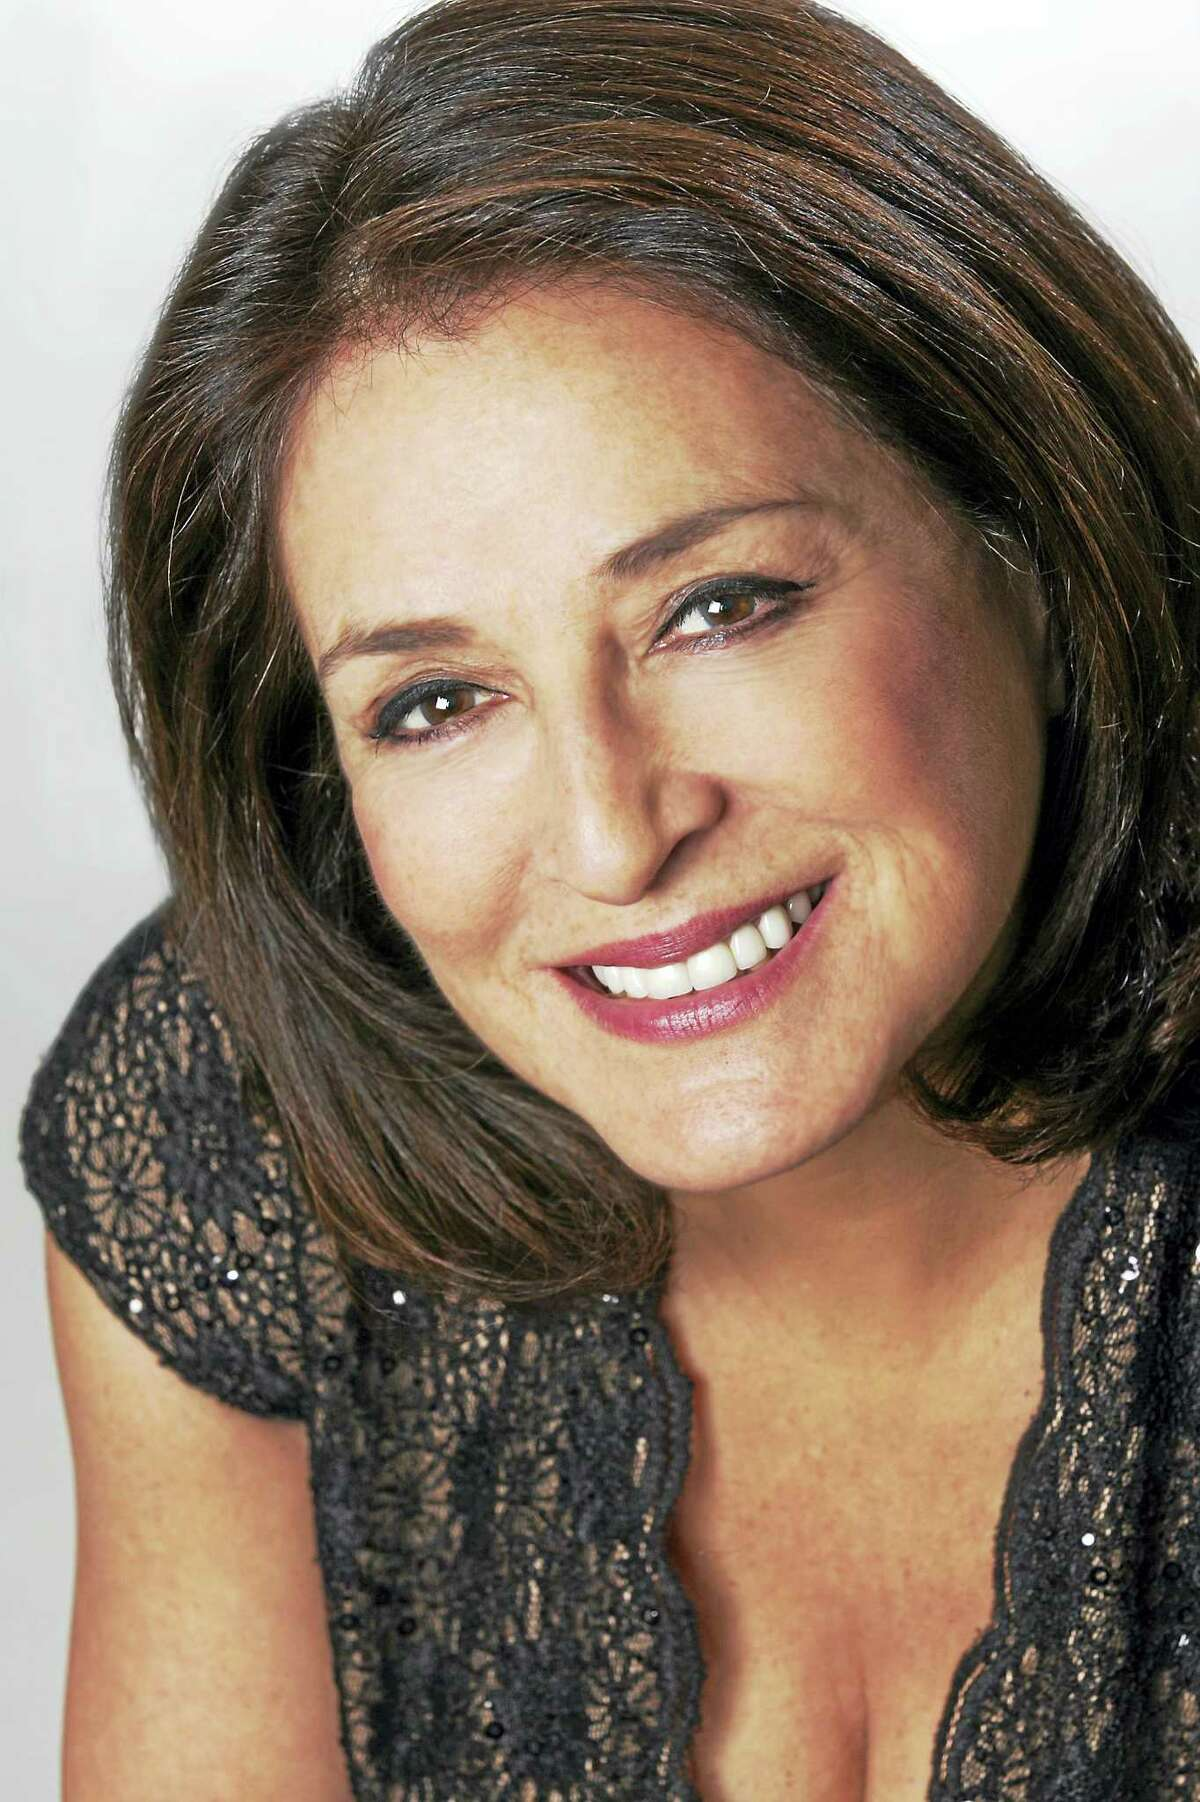 Con Brio's Gala 20th Anniversary Spring Concert will be held on Sunday, April 23, at 4 p.m., at Christ the King Church in Old Lyme. The chorale will include soprano Patricia Schuman.